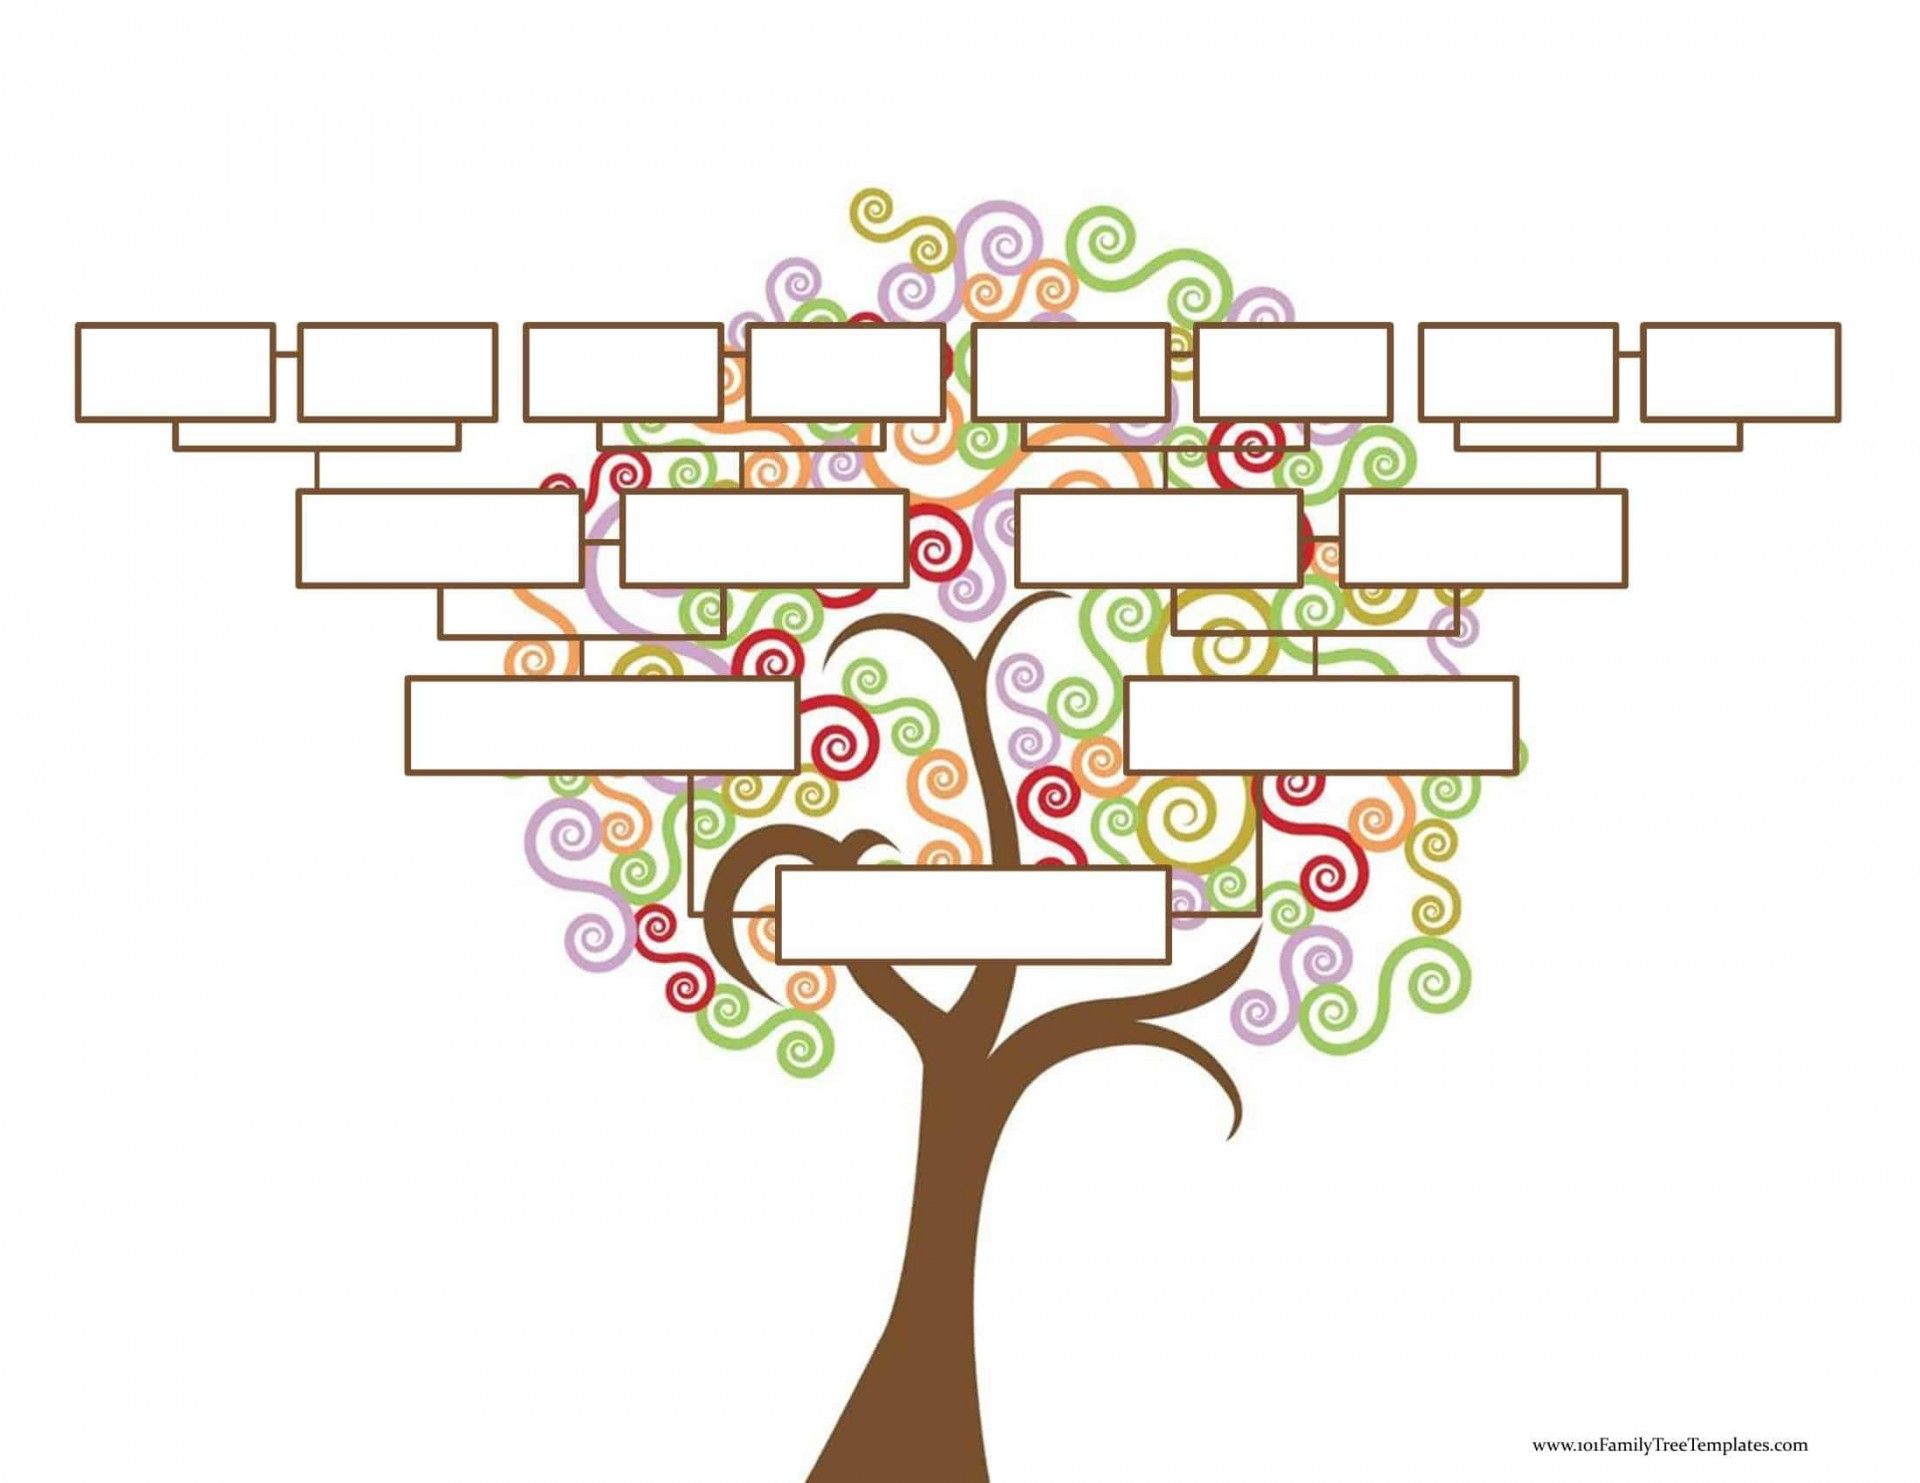 009 Unforgettable Free Editable Family Tree Template Image  Templates Pdf Powerpoint With Photo1920